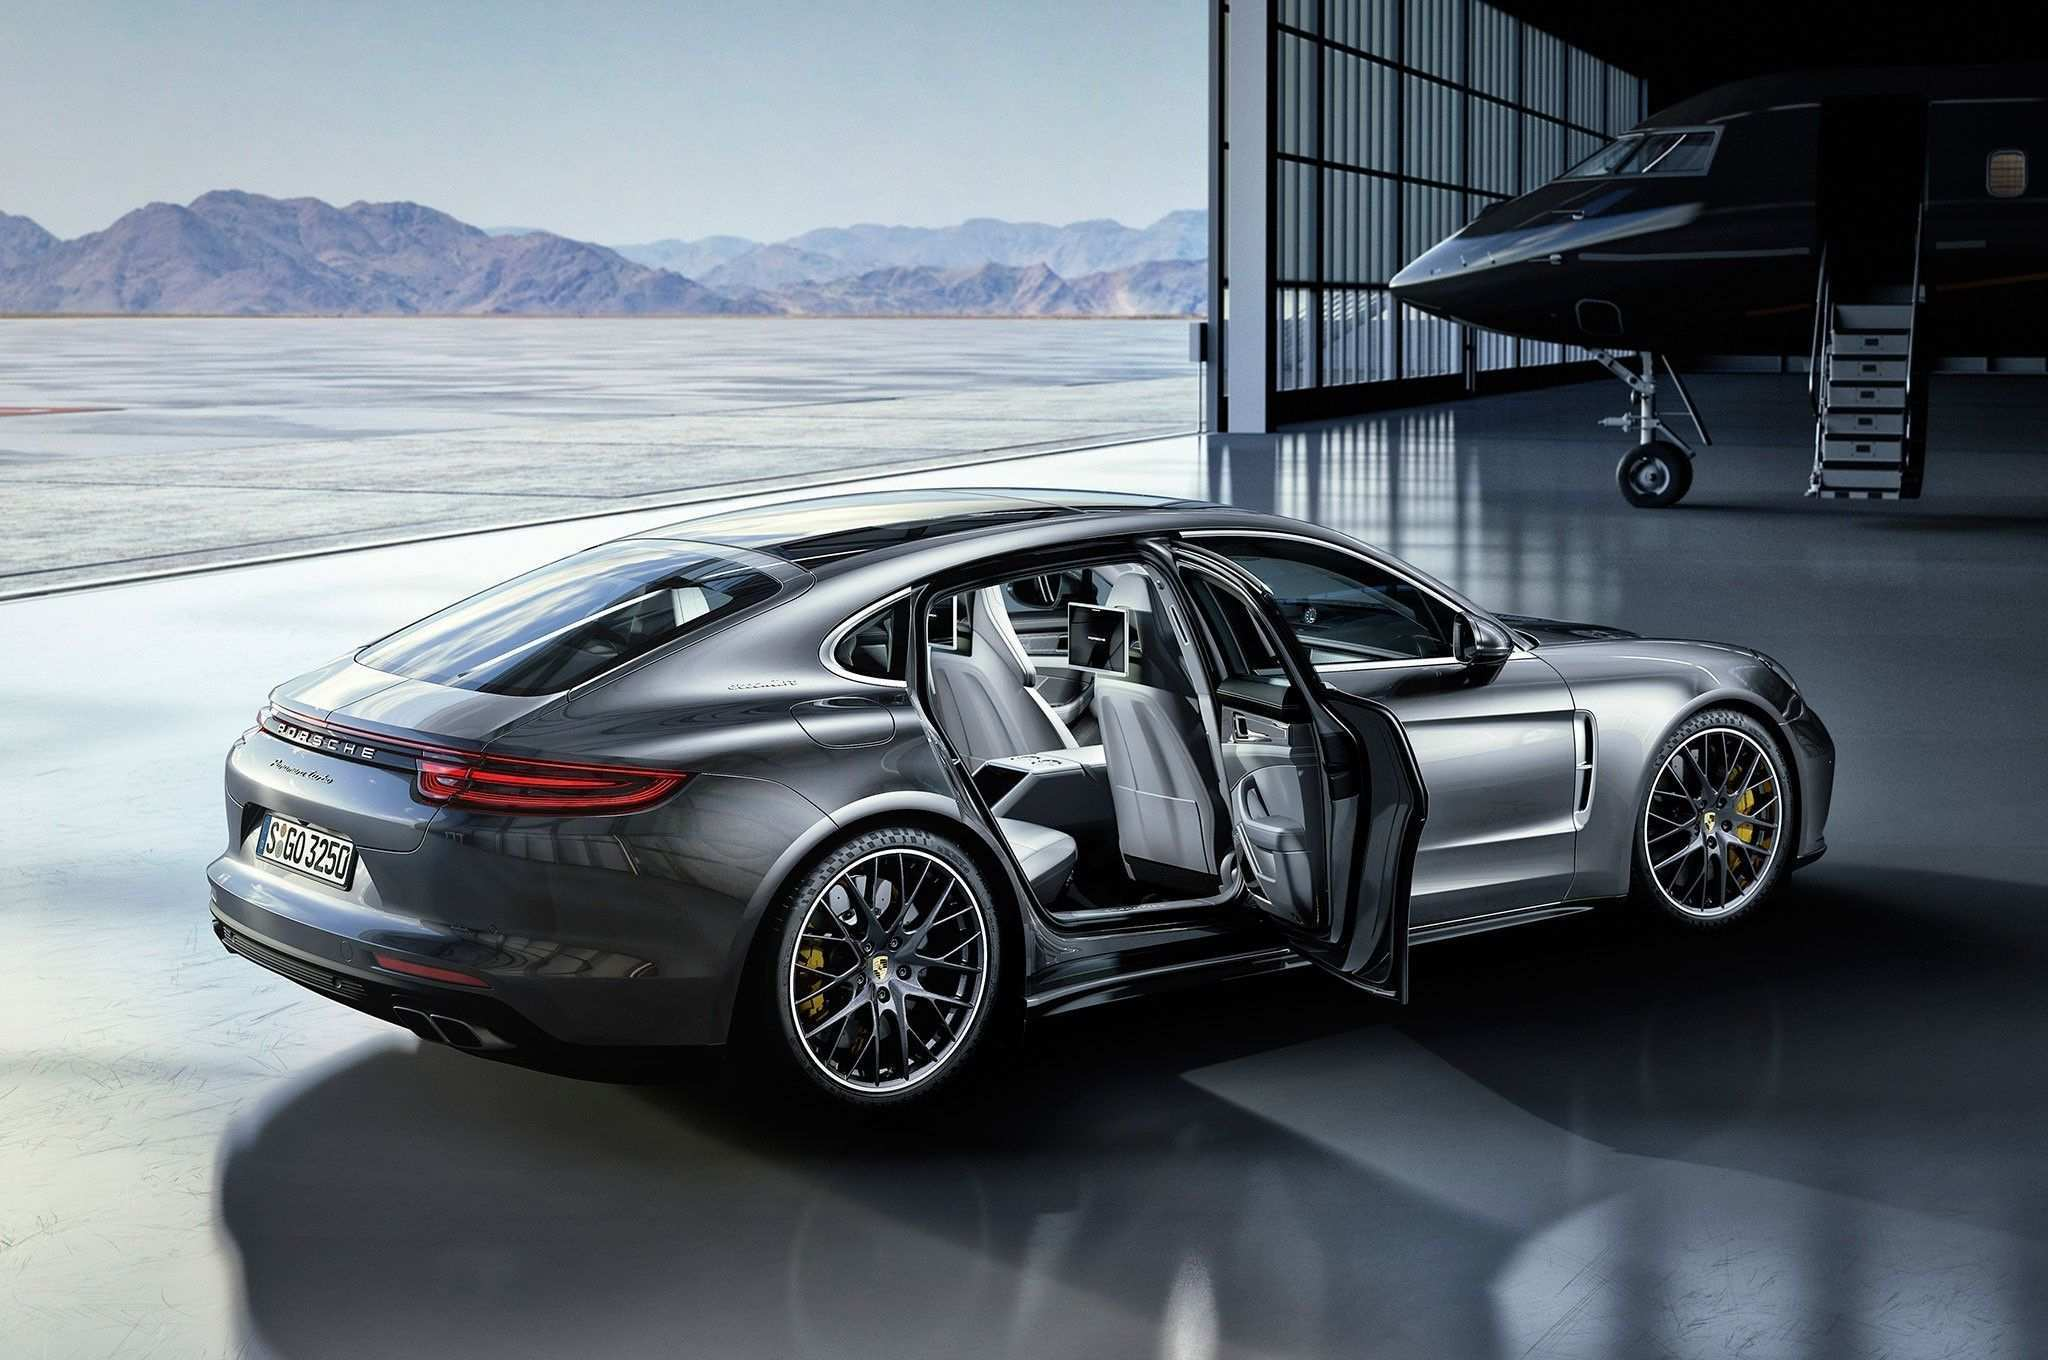 98 Best Review 2020 The Porsche Panamera Review by 2020 The Porsche Panamera